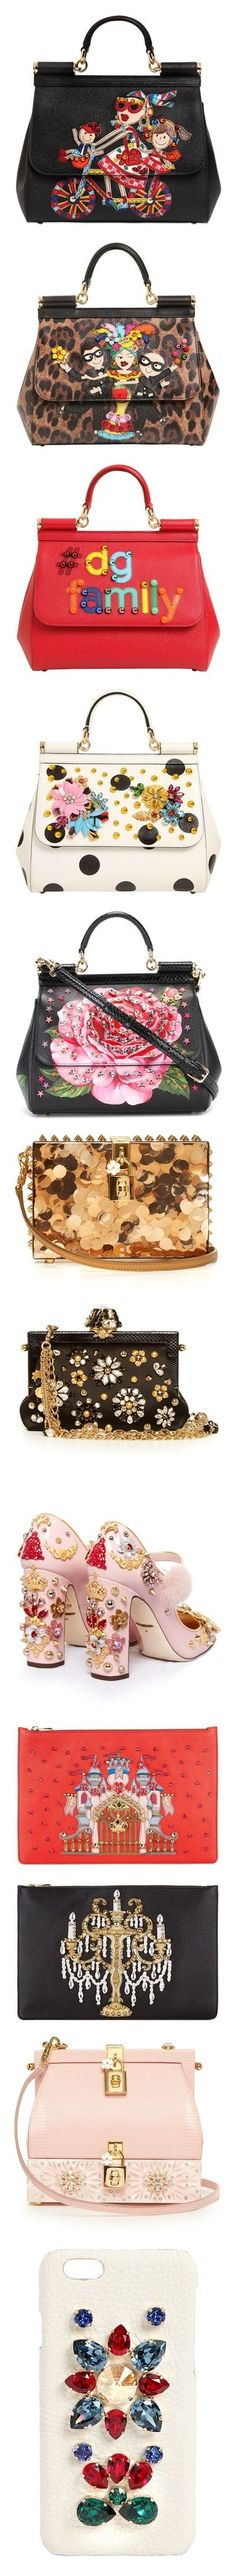 """""""Dolce&Gabbana"""" by hipsta-addiction ❤ liked on Polyvore featuring bags, handbags, shoulder bags, black, dolce gabbana shoulder bag, genuine leather handbags, dolce gabbana handbags, leather shoulder bag, leather handbags and leopard"""